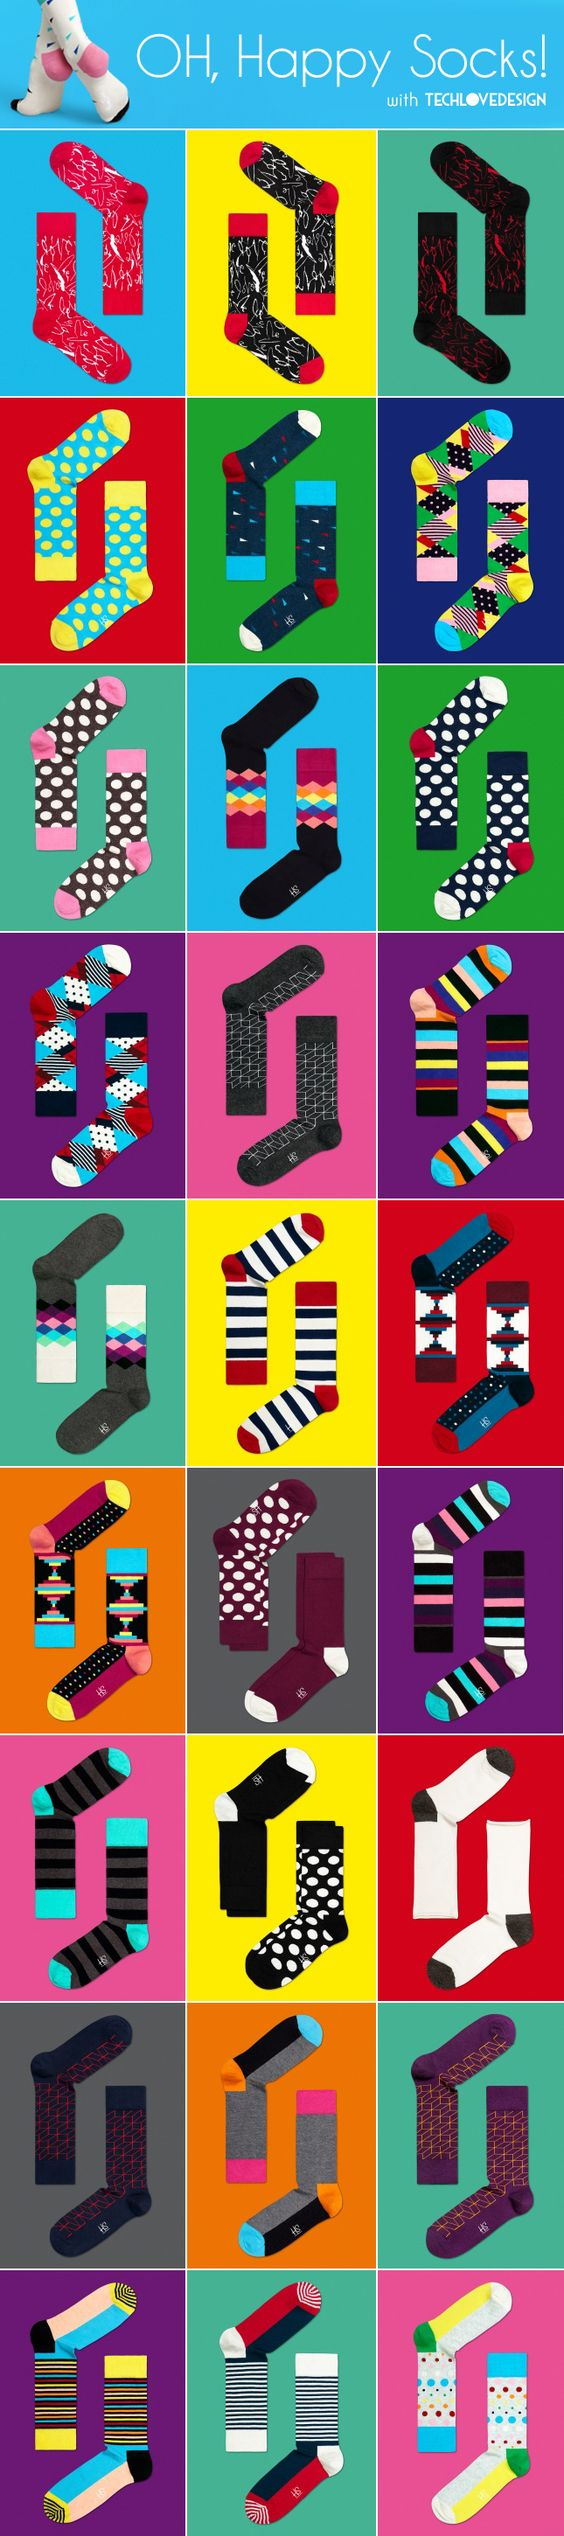 Happy Socks. Very cheerful goodies :)